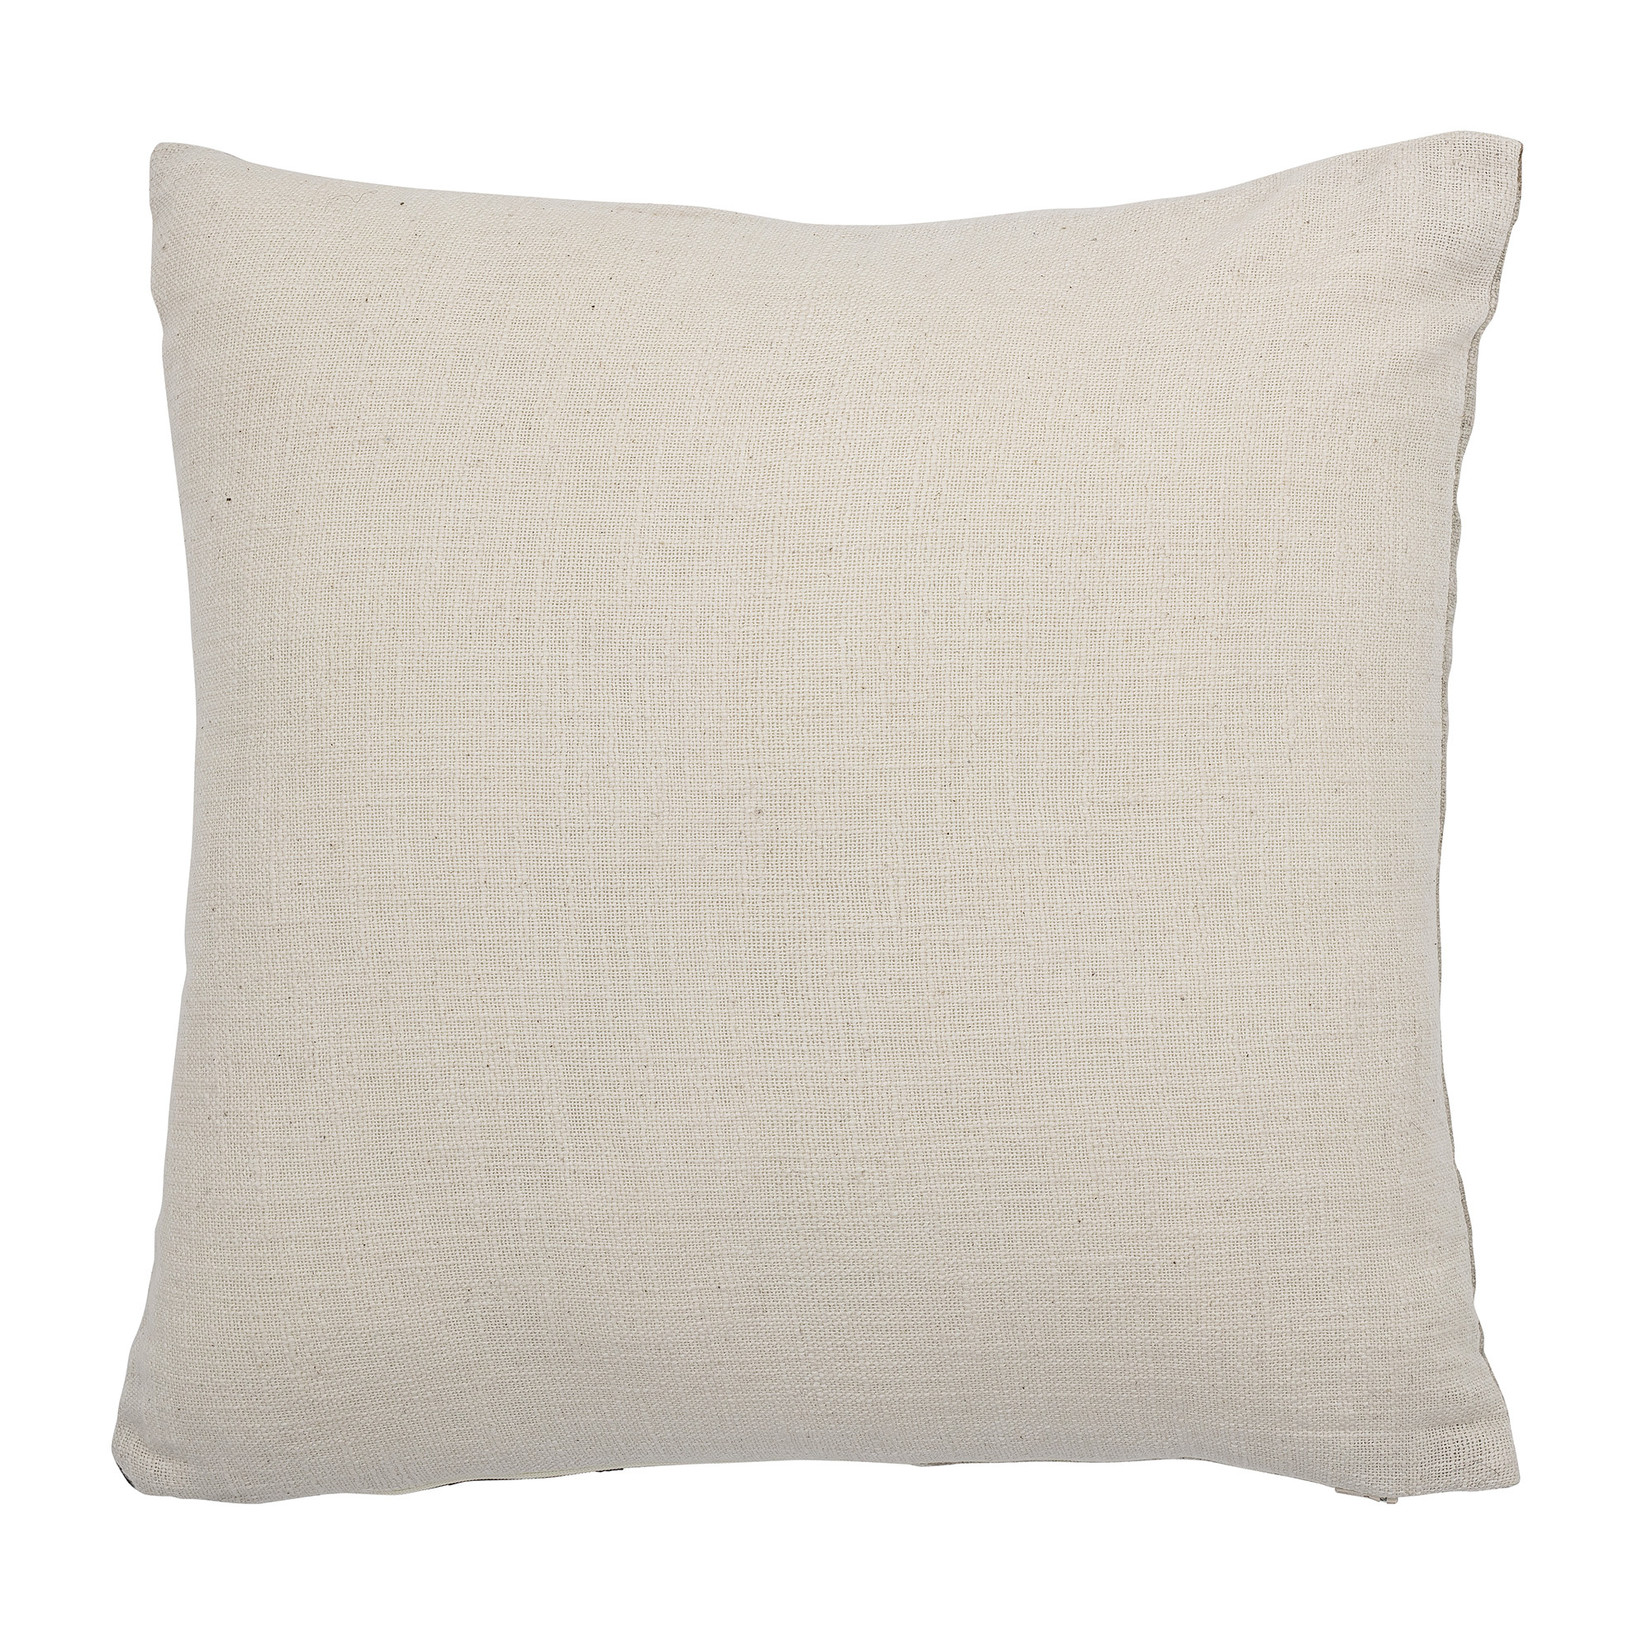 Bloomingville  Ginette Cushion, Nature, Cotton